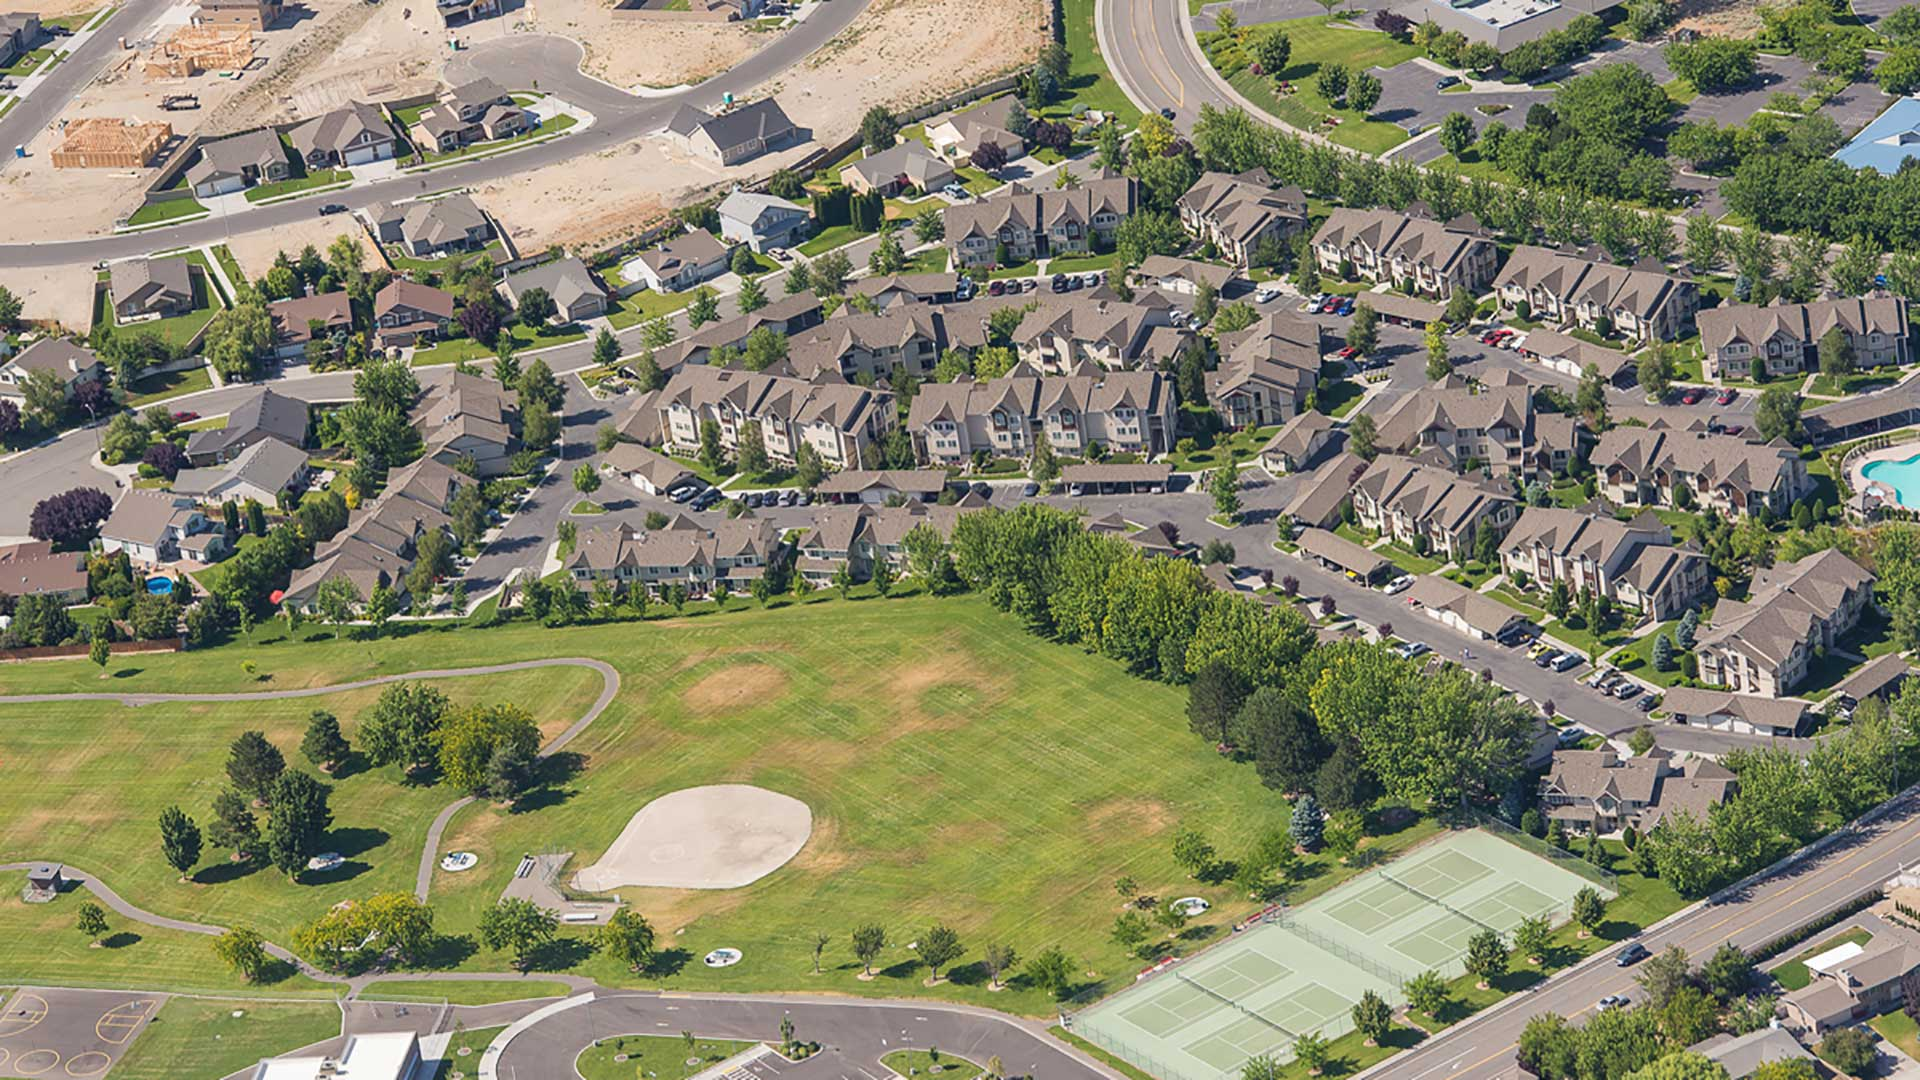 Grandridge Apartments - aerial